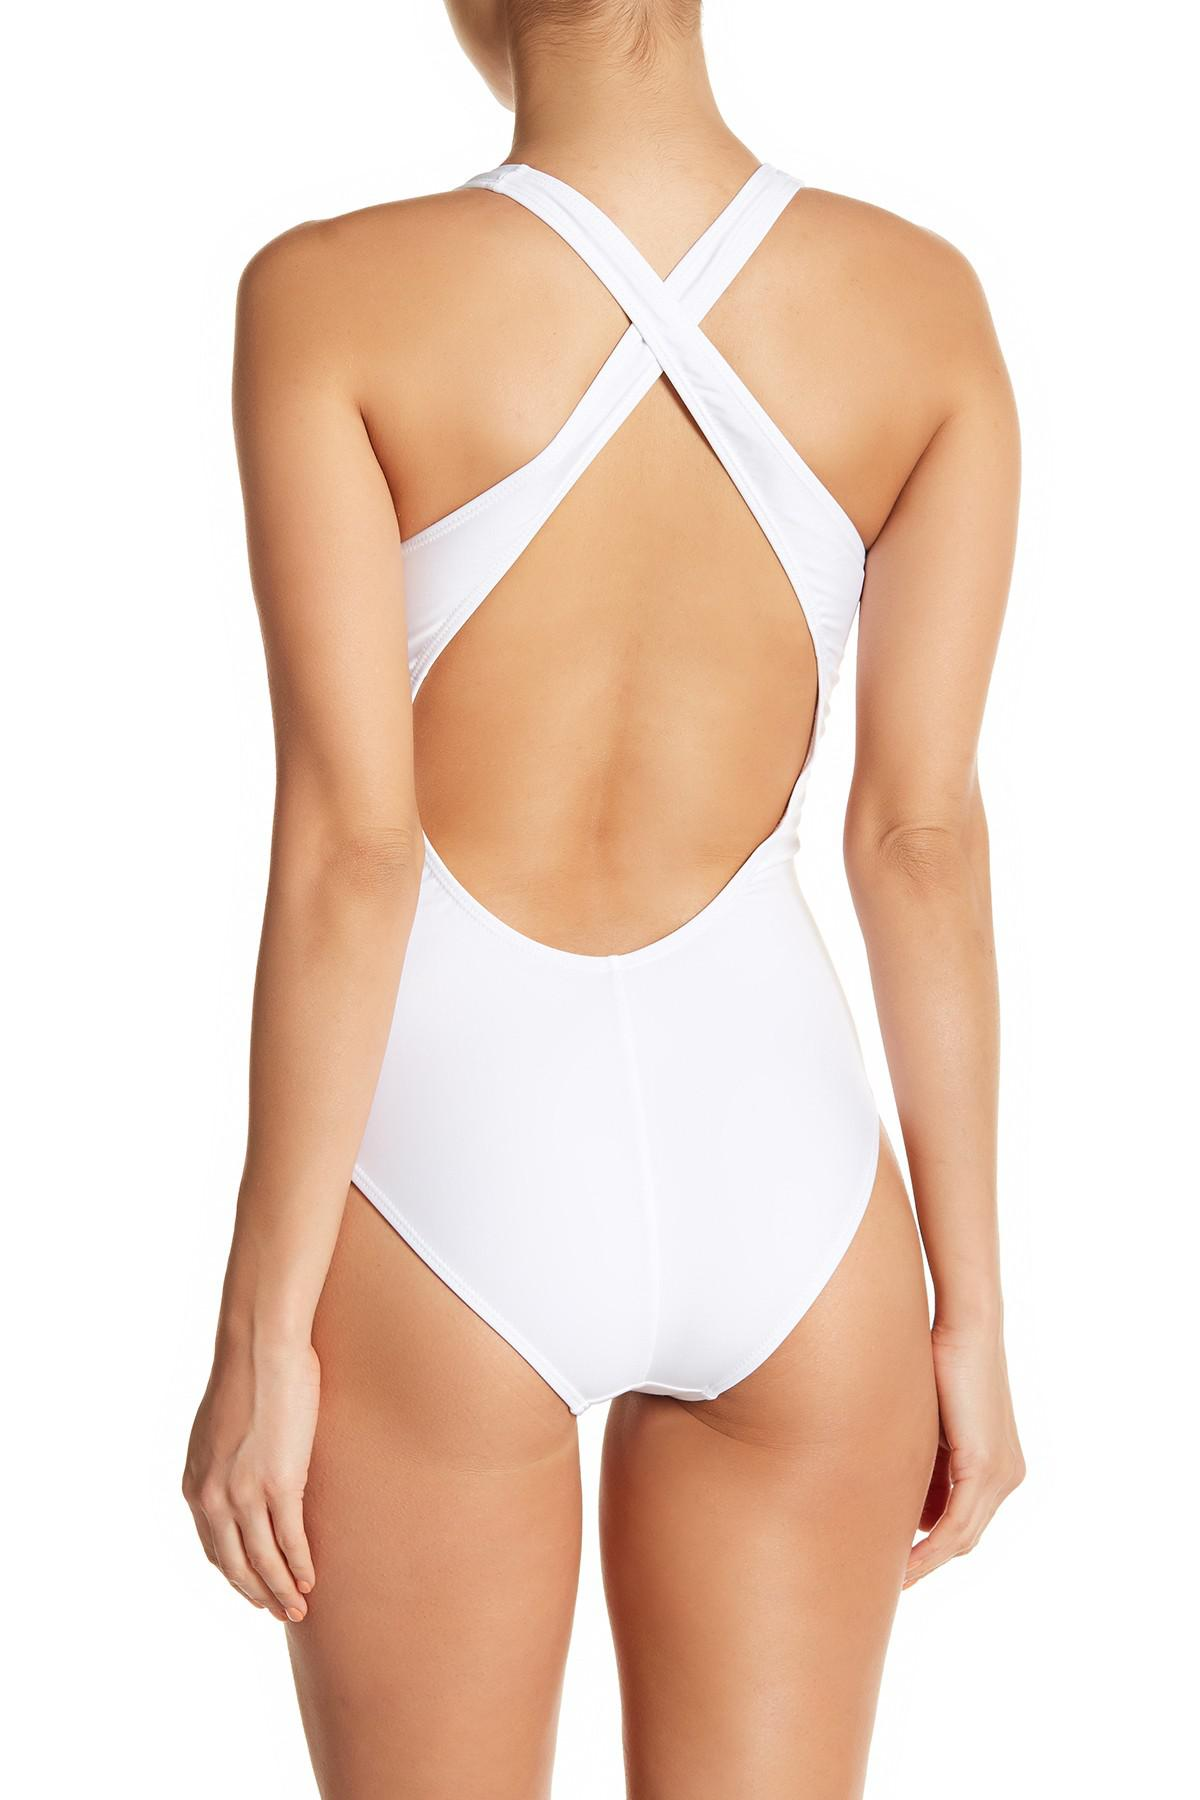 9c8ac8823ddad Gallery. Previously sold at: Nordstrom Rack · Women's Cut Out Swimsuits ...